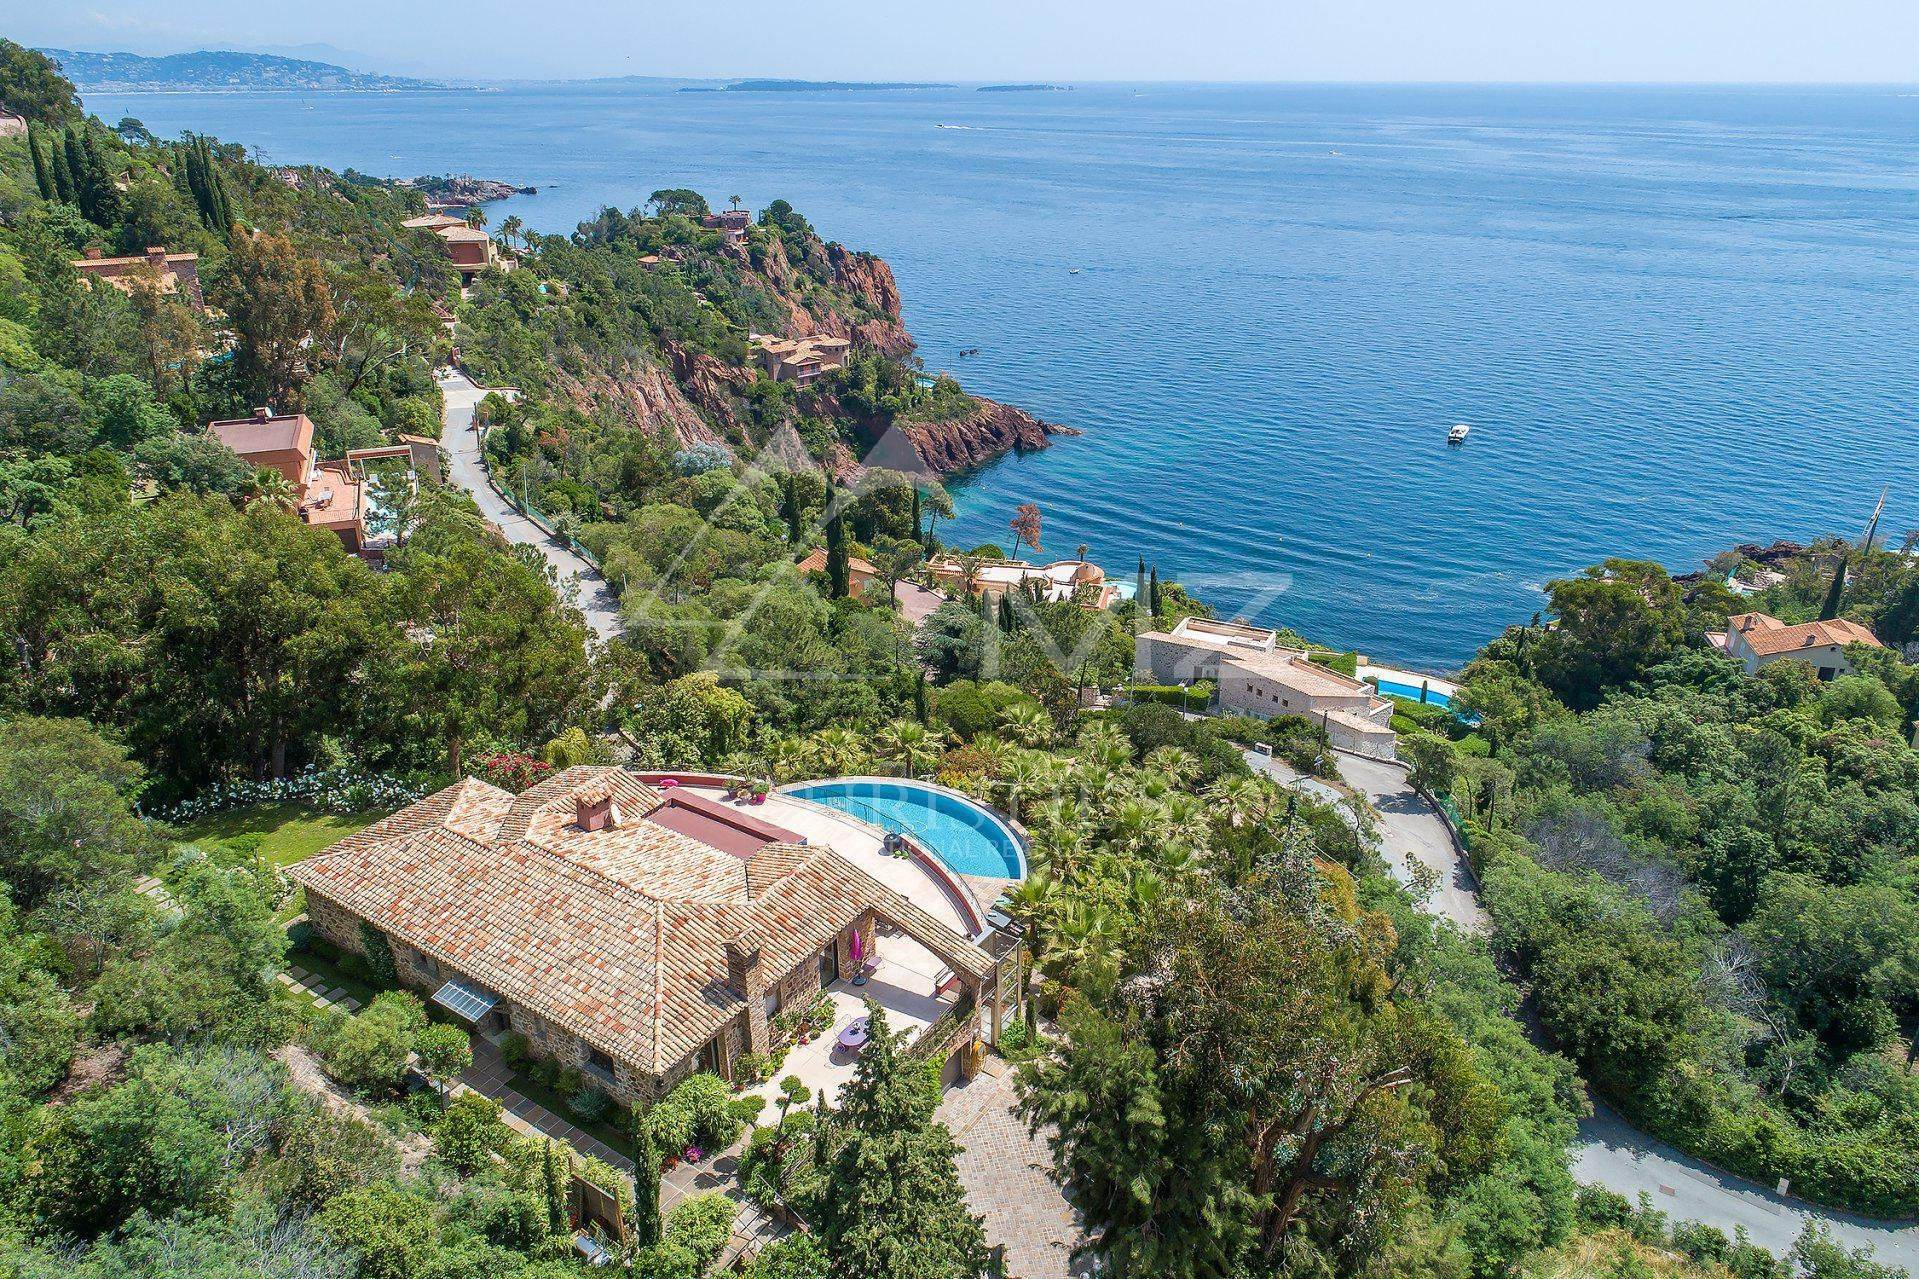 Villa/Townhouse for Sale at Close to Cannes - Modern villa Theoule sur Mer, Alpes-Maritimes,06590 France